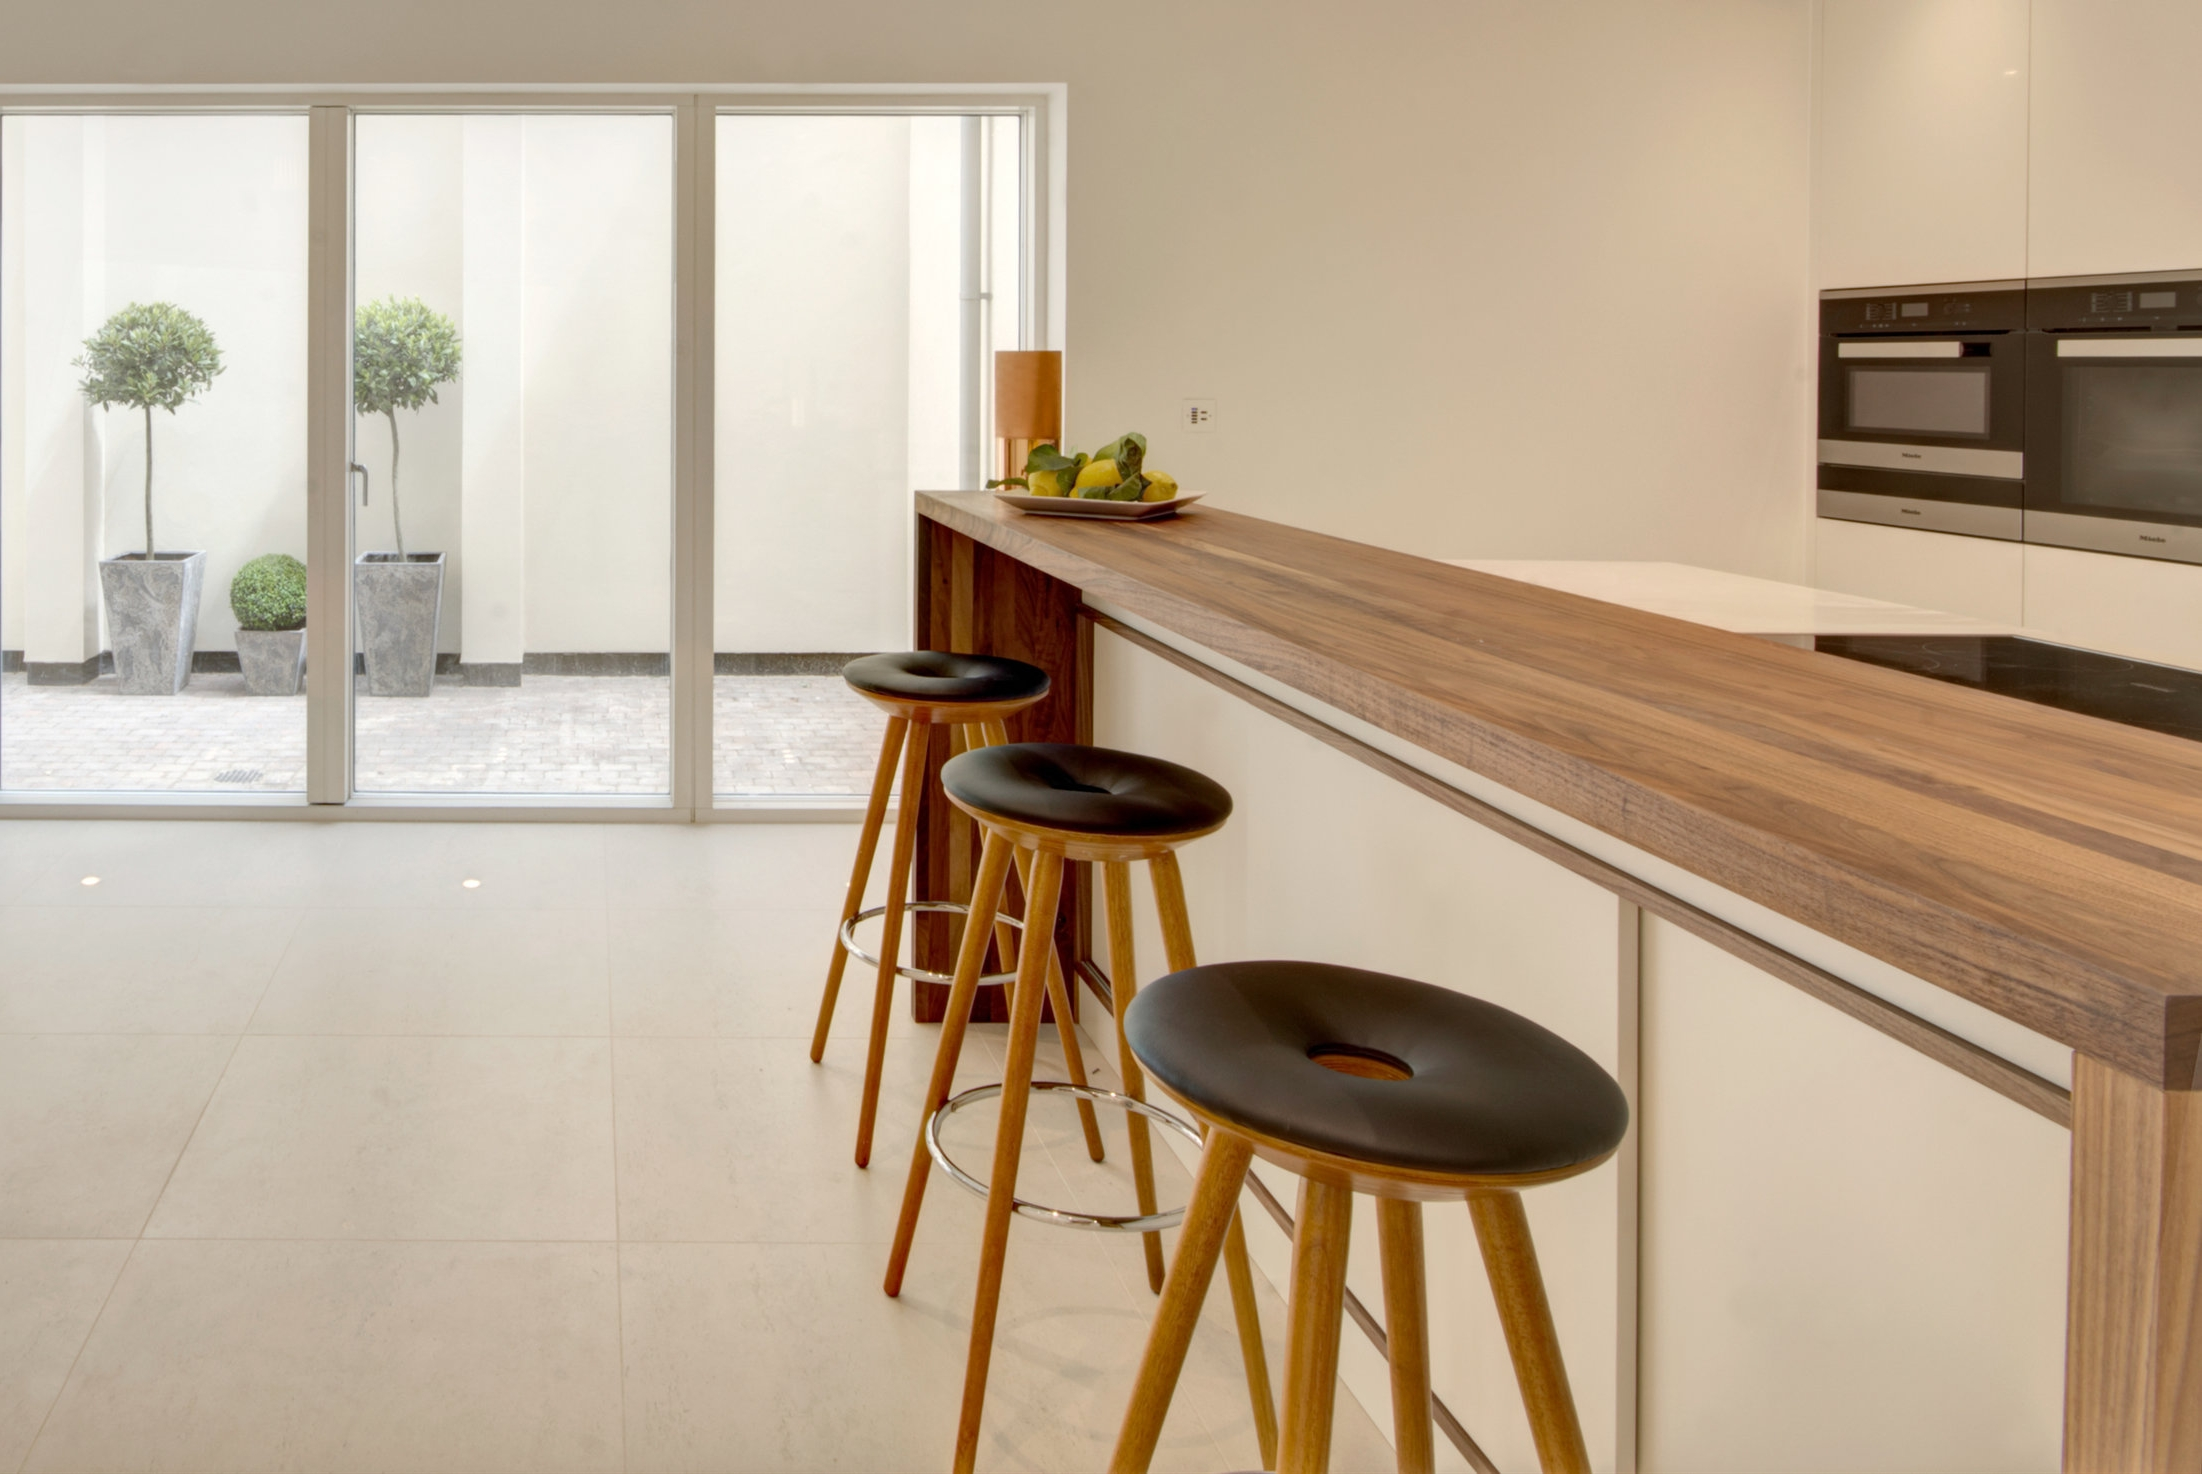 Kitchen design for contemporary development featuring island unit with walnut bar.